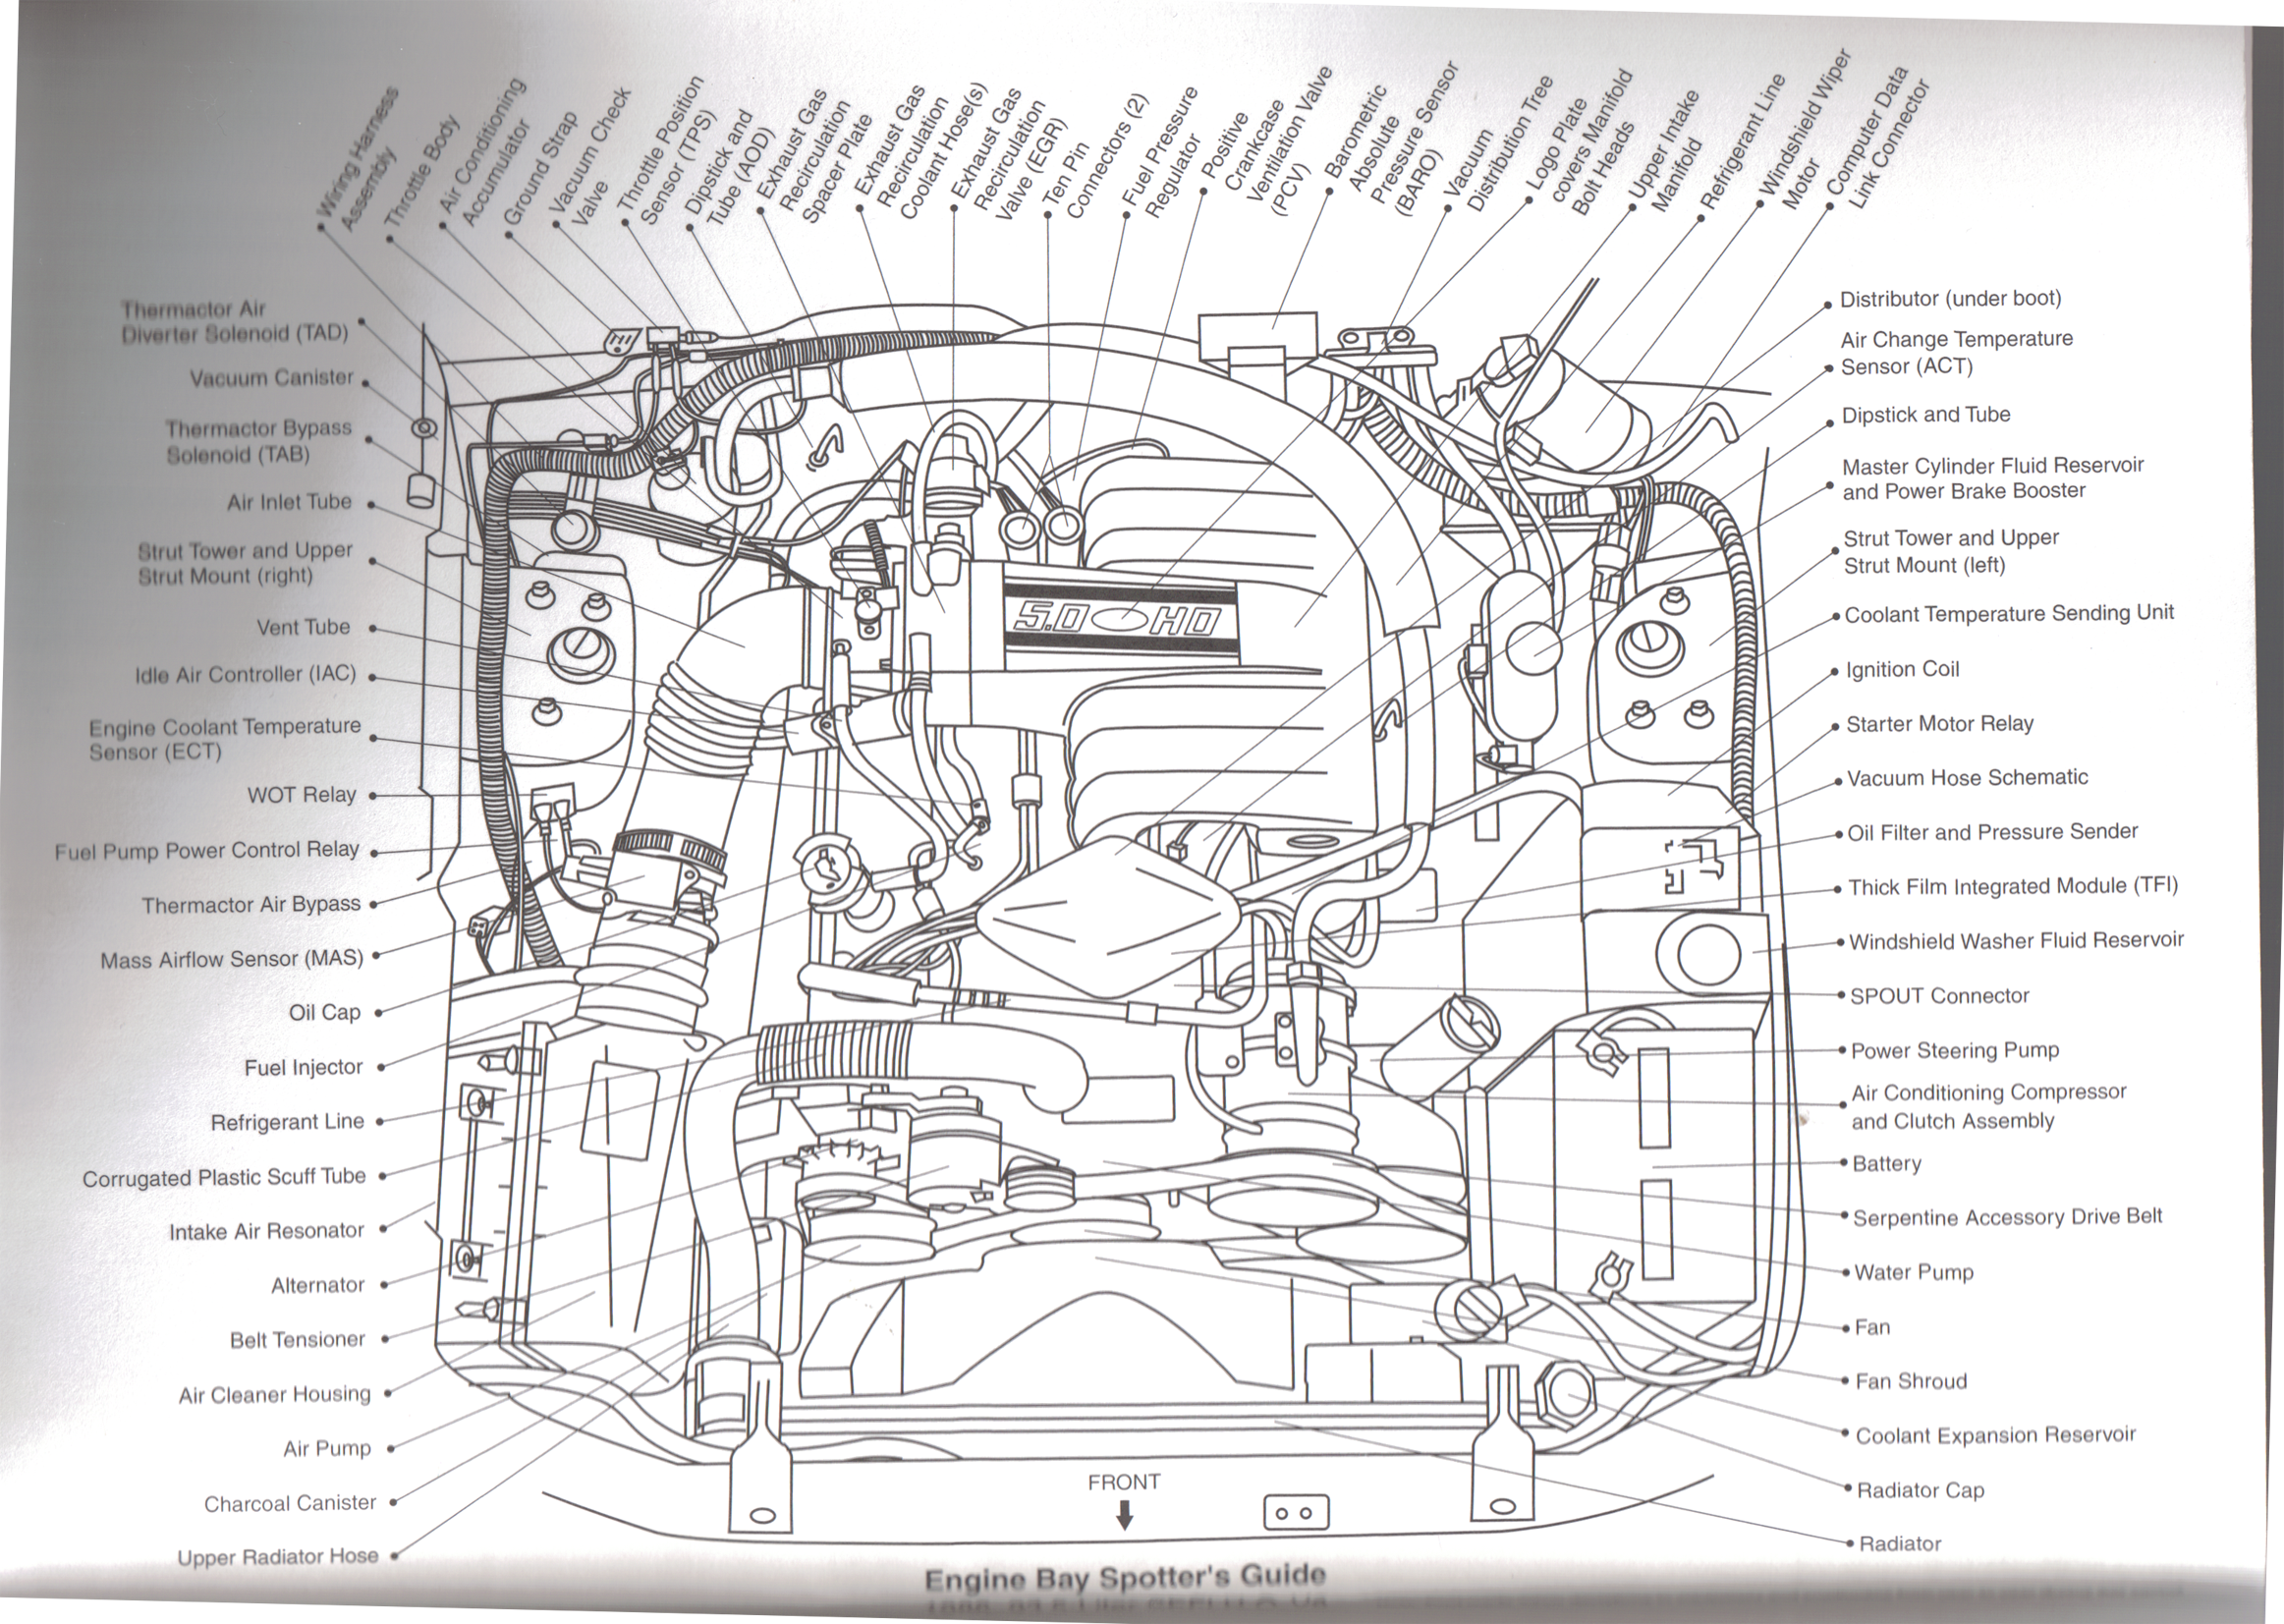 1987 1993 foxbody 5.0 sefi v8 engine part diagram everything you need to know about 1979 1993 foxbody mustangs fox body wiring harness diagram at edmiracle.co